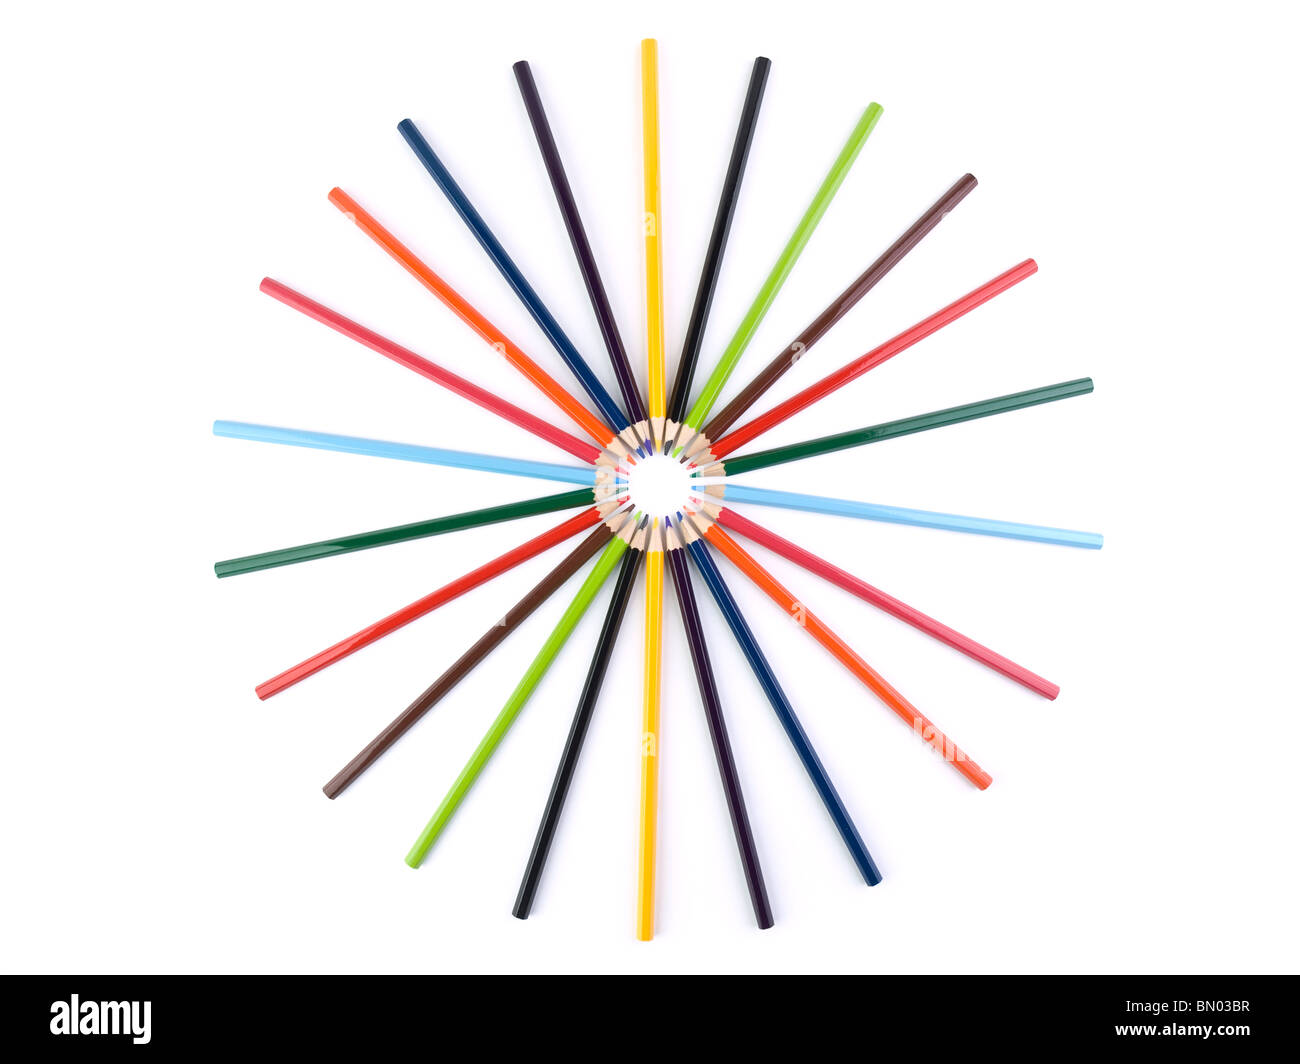 A circle formed by several colored pencils. Isolated on white. - Stock Image